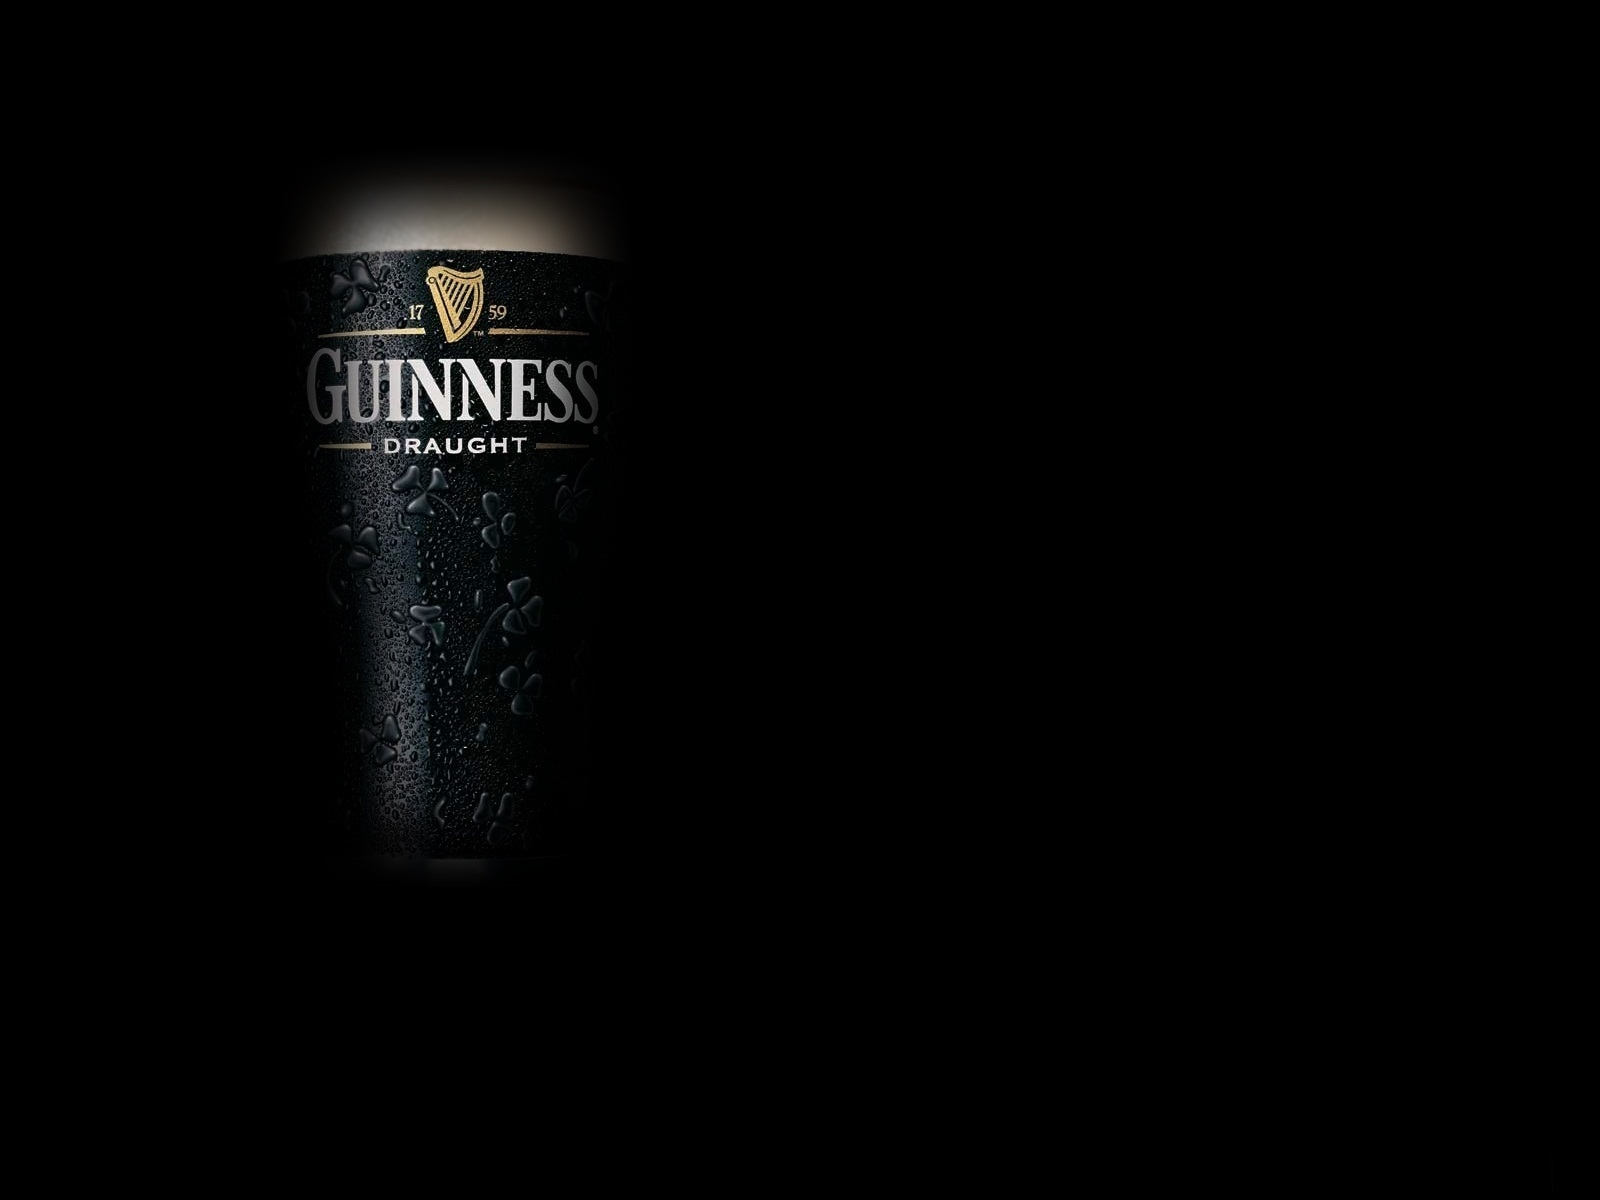 Guinness Beer for 1600 x 1200 resolution